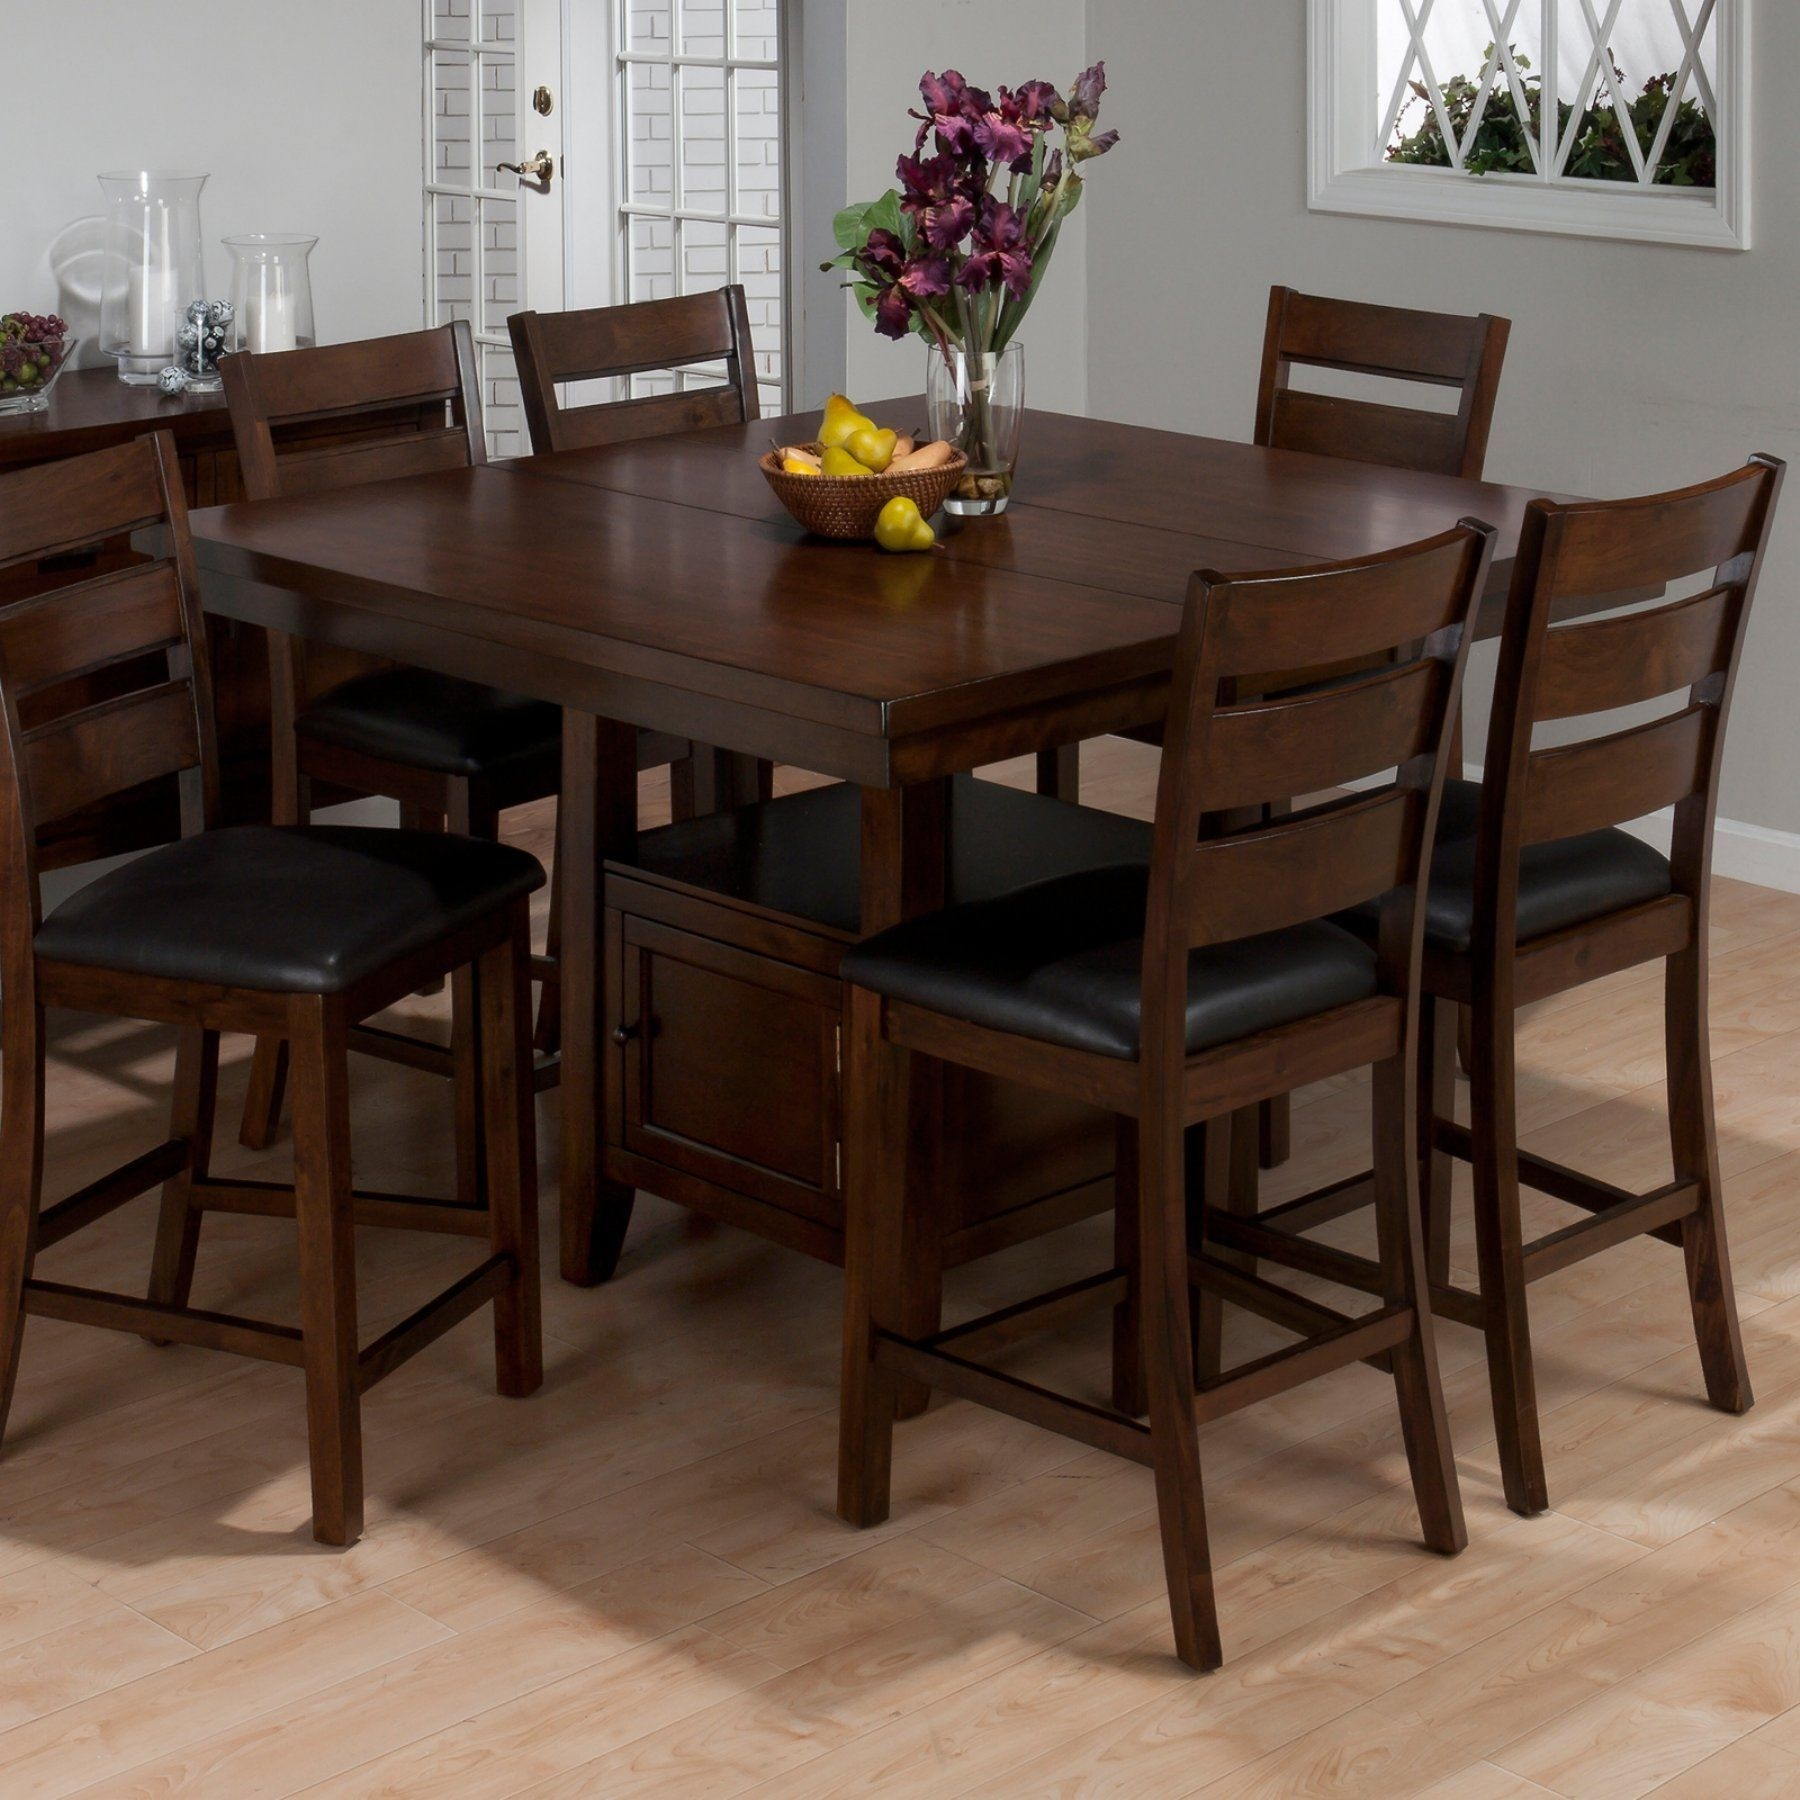 Counter height table sets with storage & Counter Height Table Sets With Storage - Foter